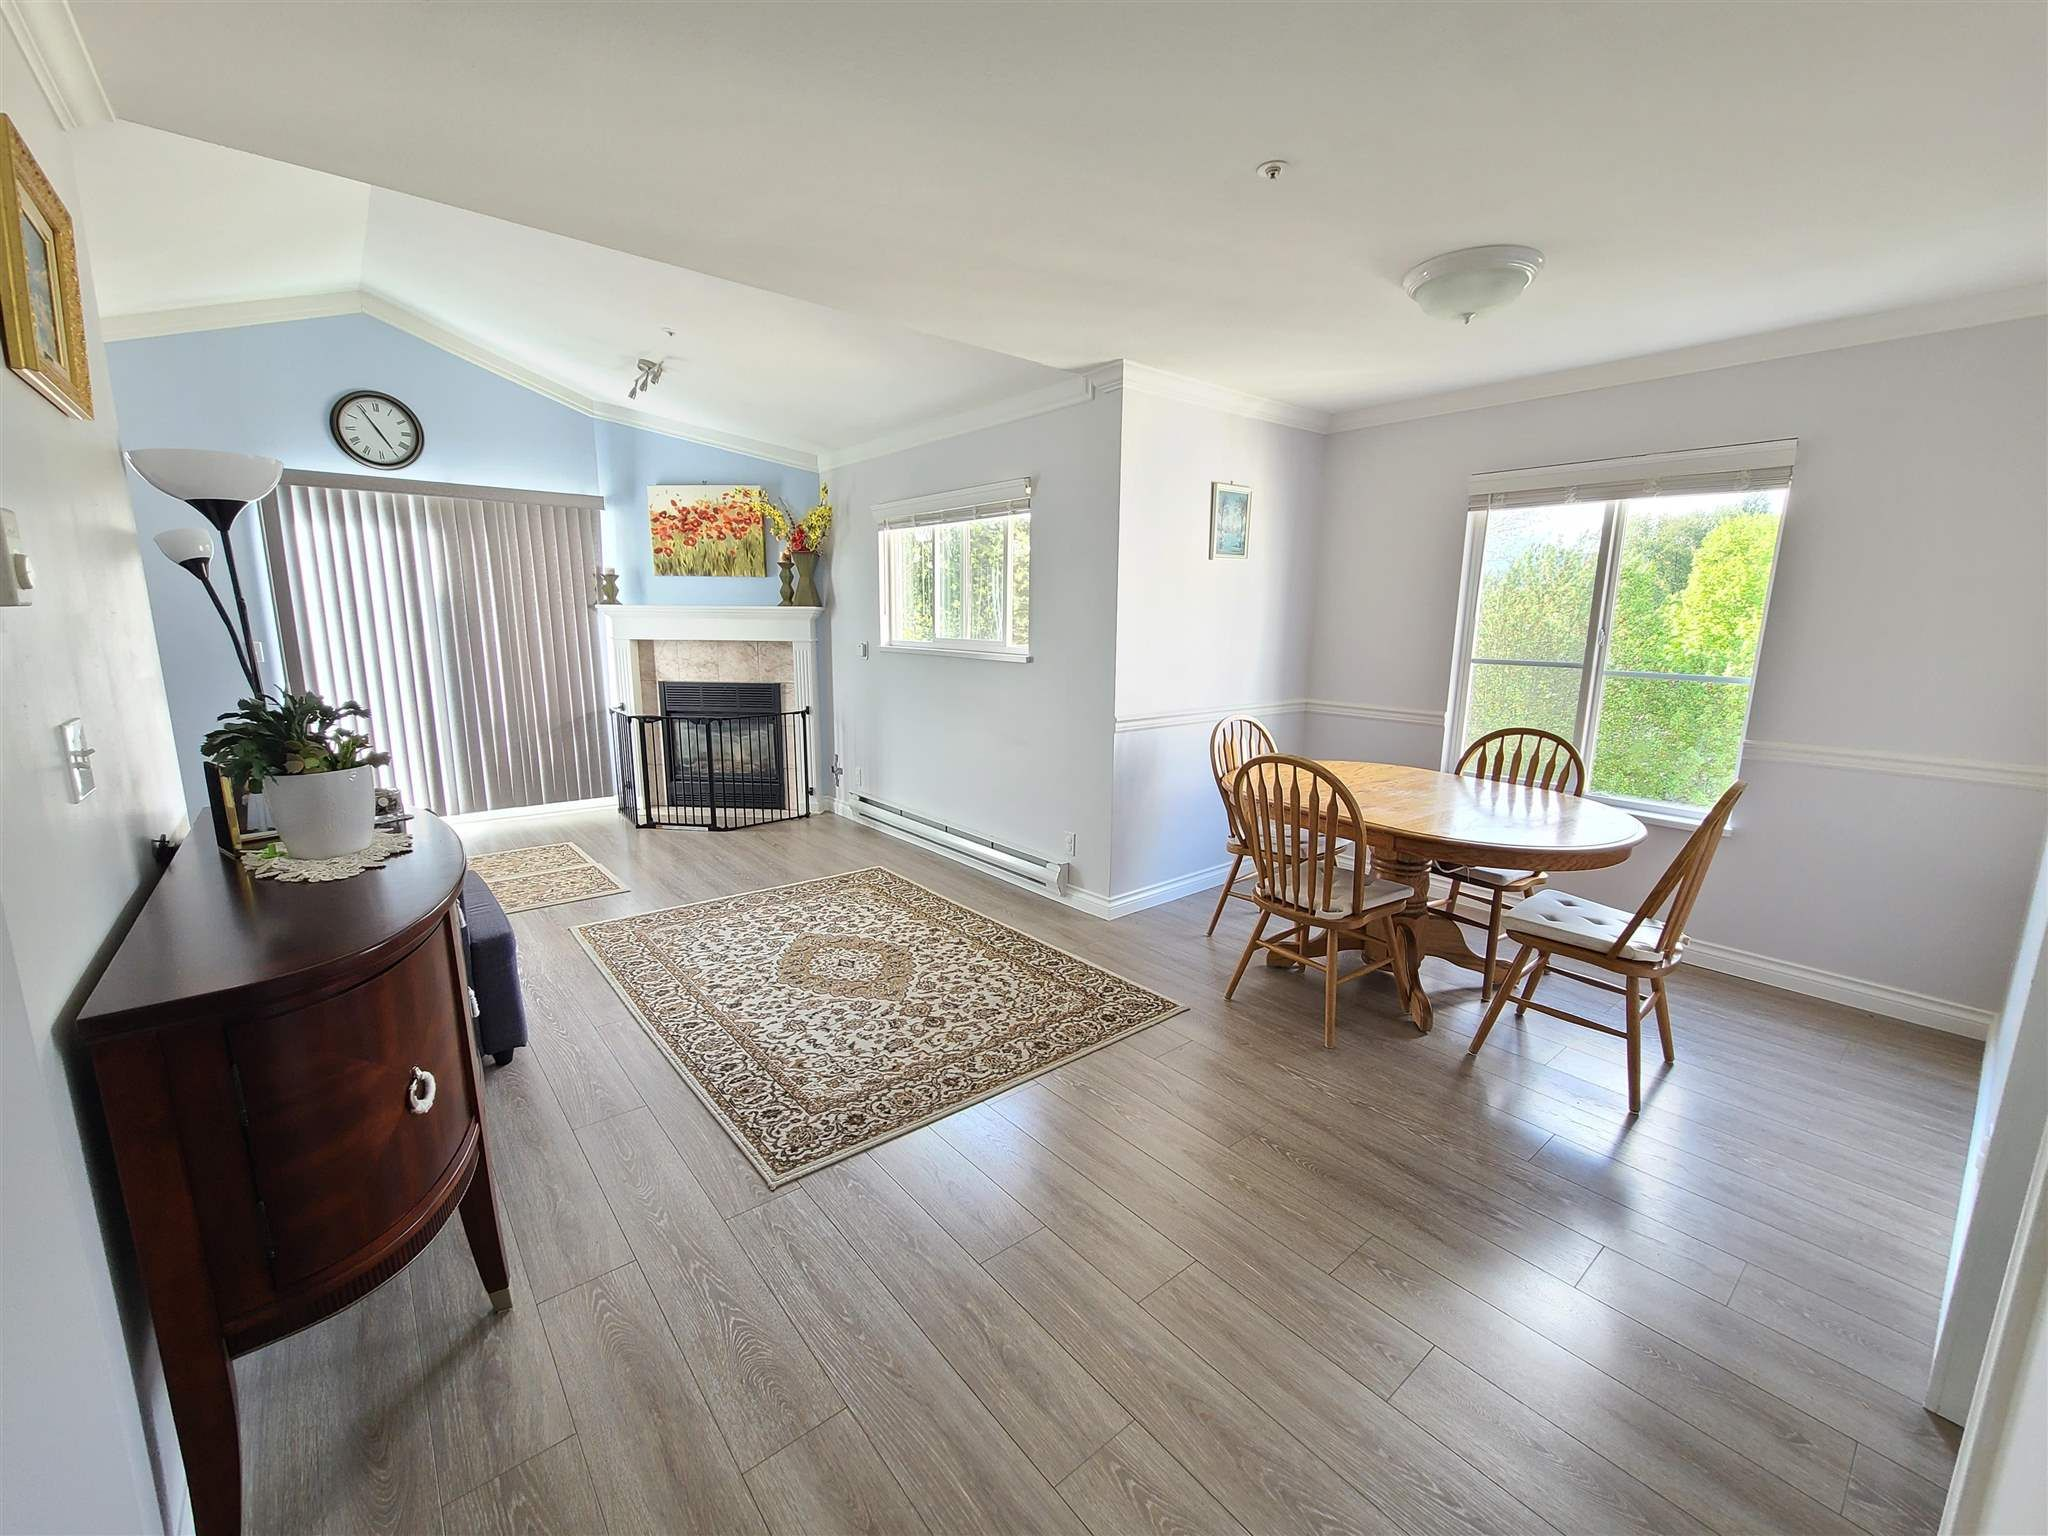 Main Photo: 408 2620 JANE Street in Port Coquitlam: Central Pt Coquitlam Condo for sale : MLS®# R2594572